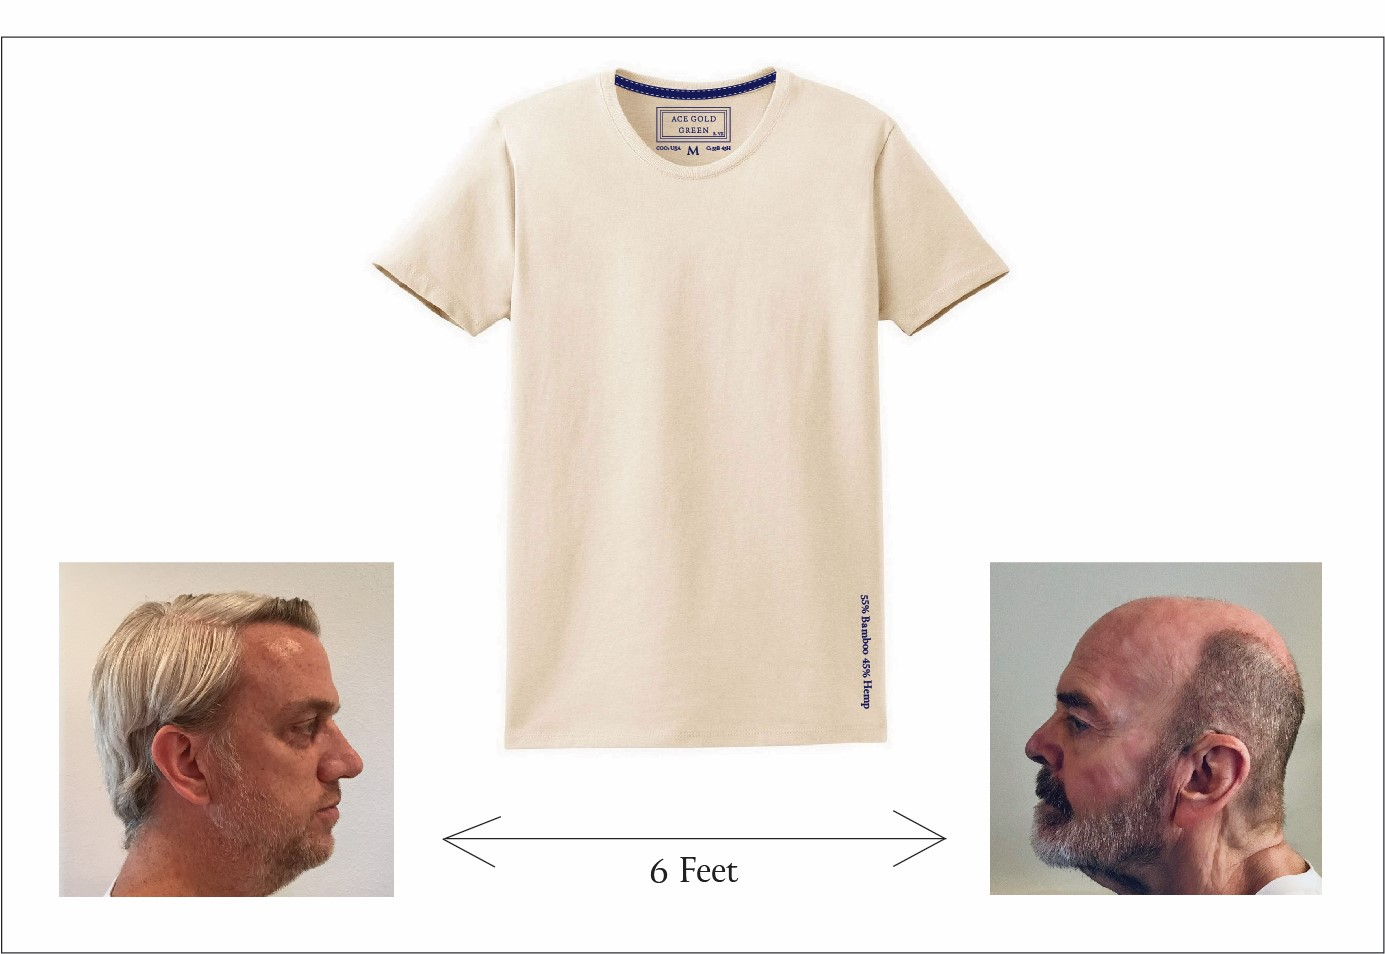 Adriano Goldschmied introduces 100% cotton free t-shirt